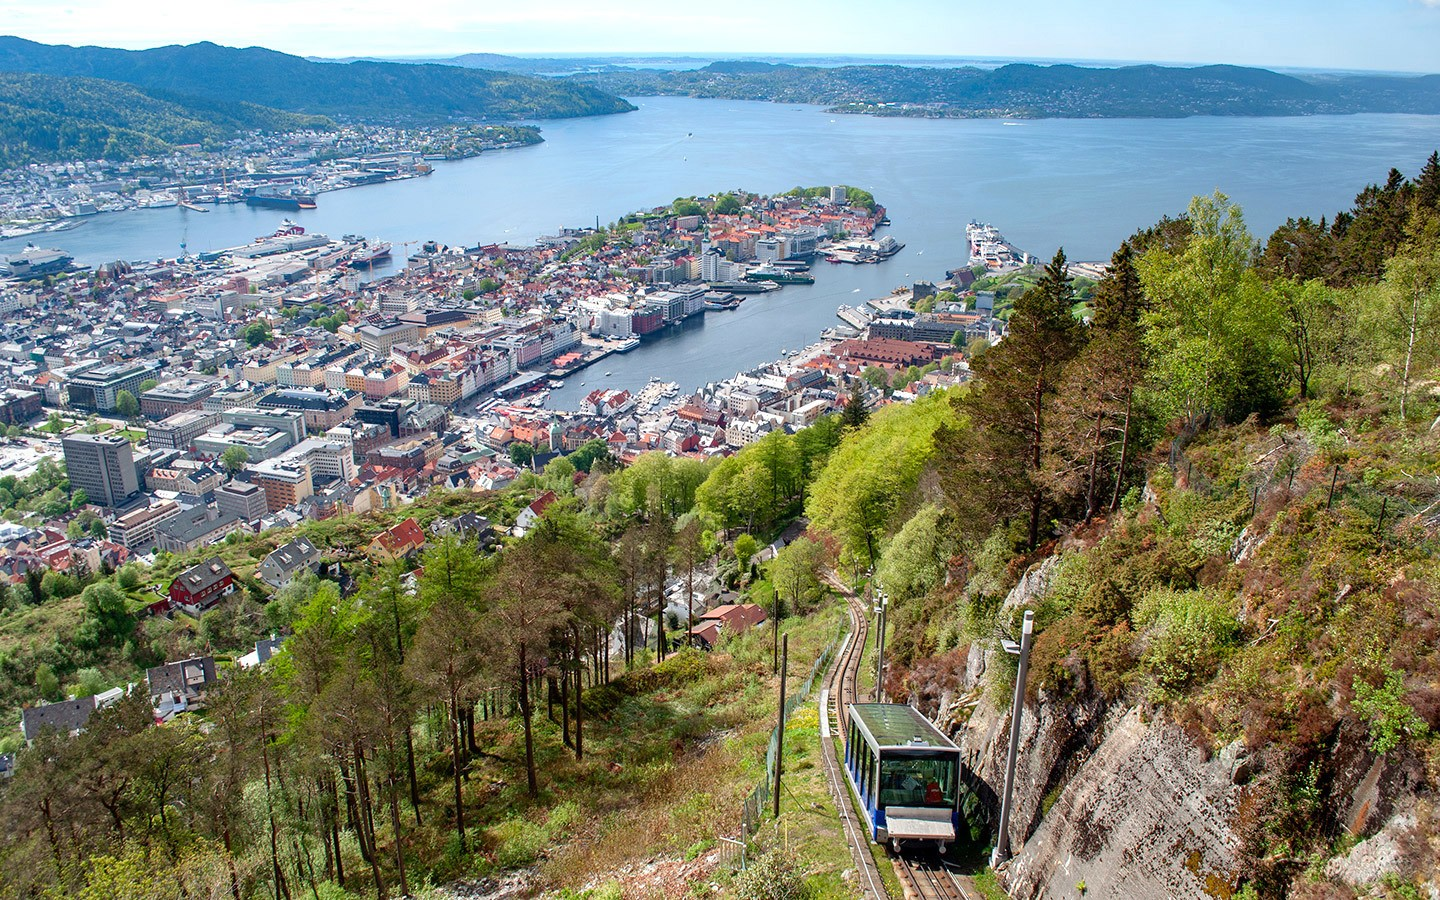 The Fløibanen funicular railway in Bergen at the end of the trip through Scandinavia by train